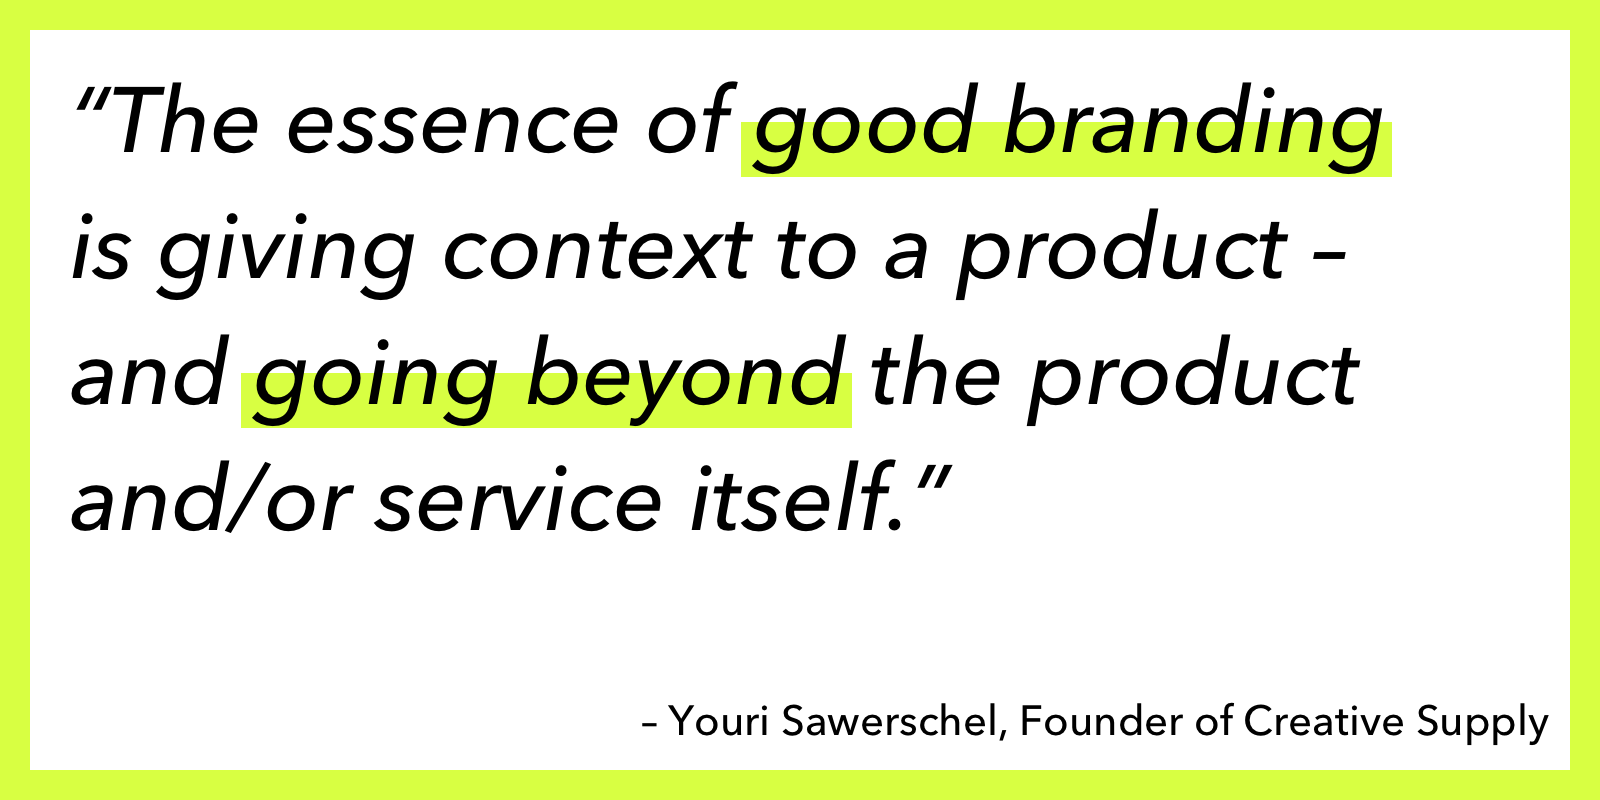 The essence of good branding quote